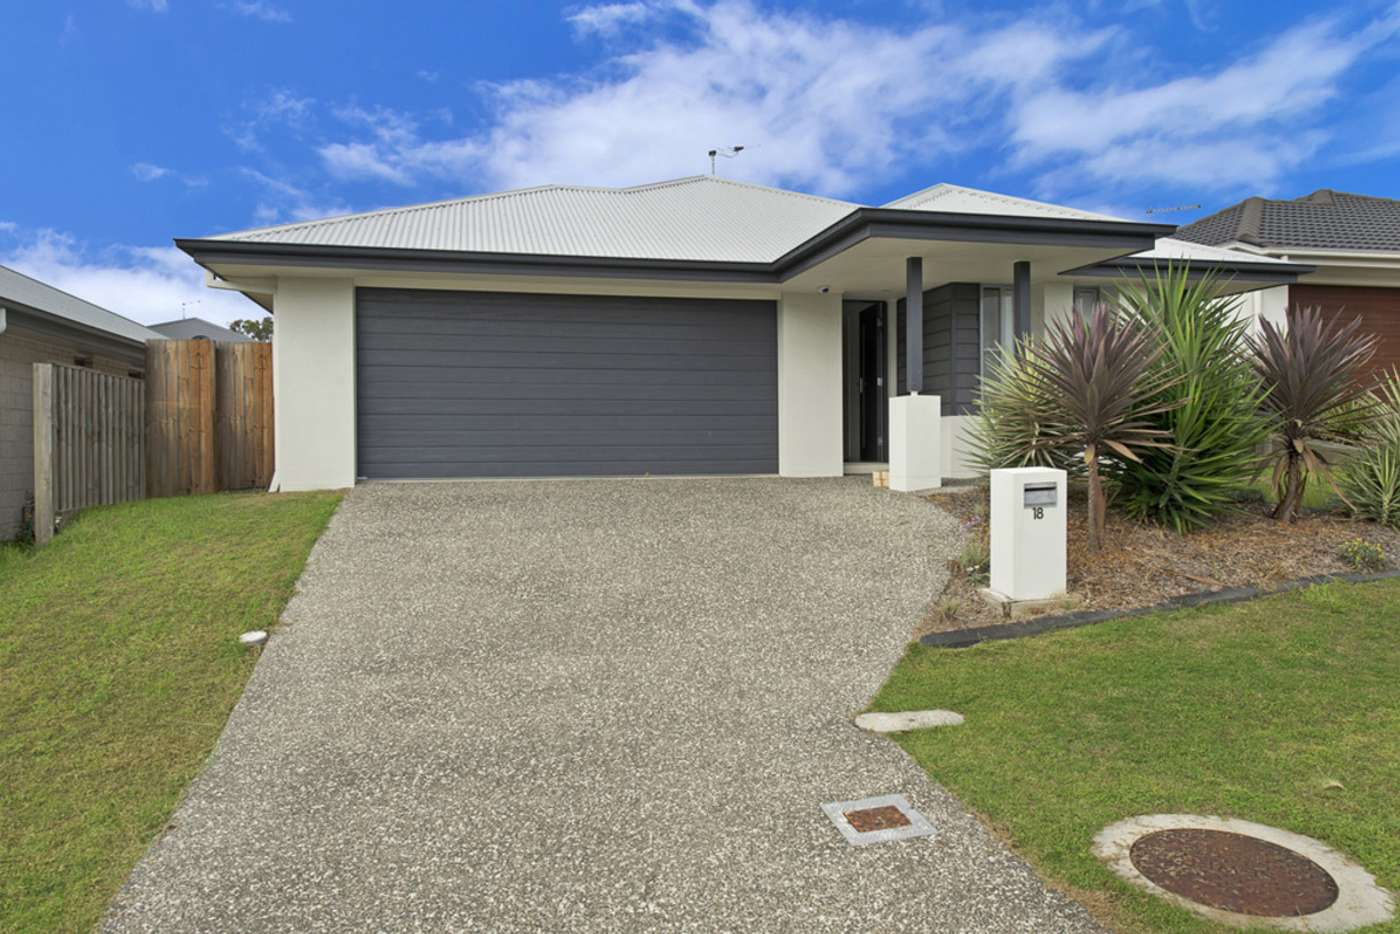 Main view of Homely house listing, 18 Hollanders Crescent, Ormeau Hills QLD 4208